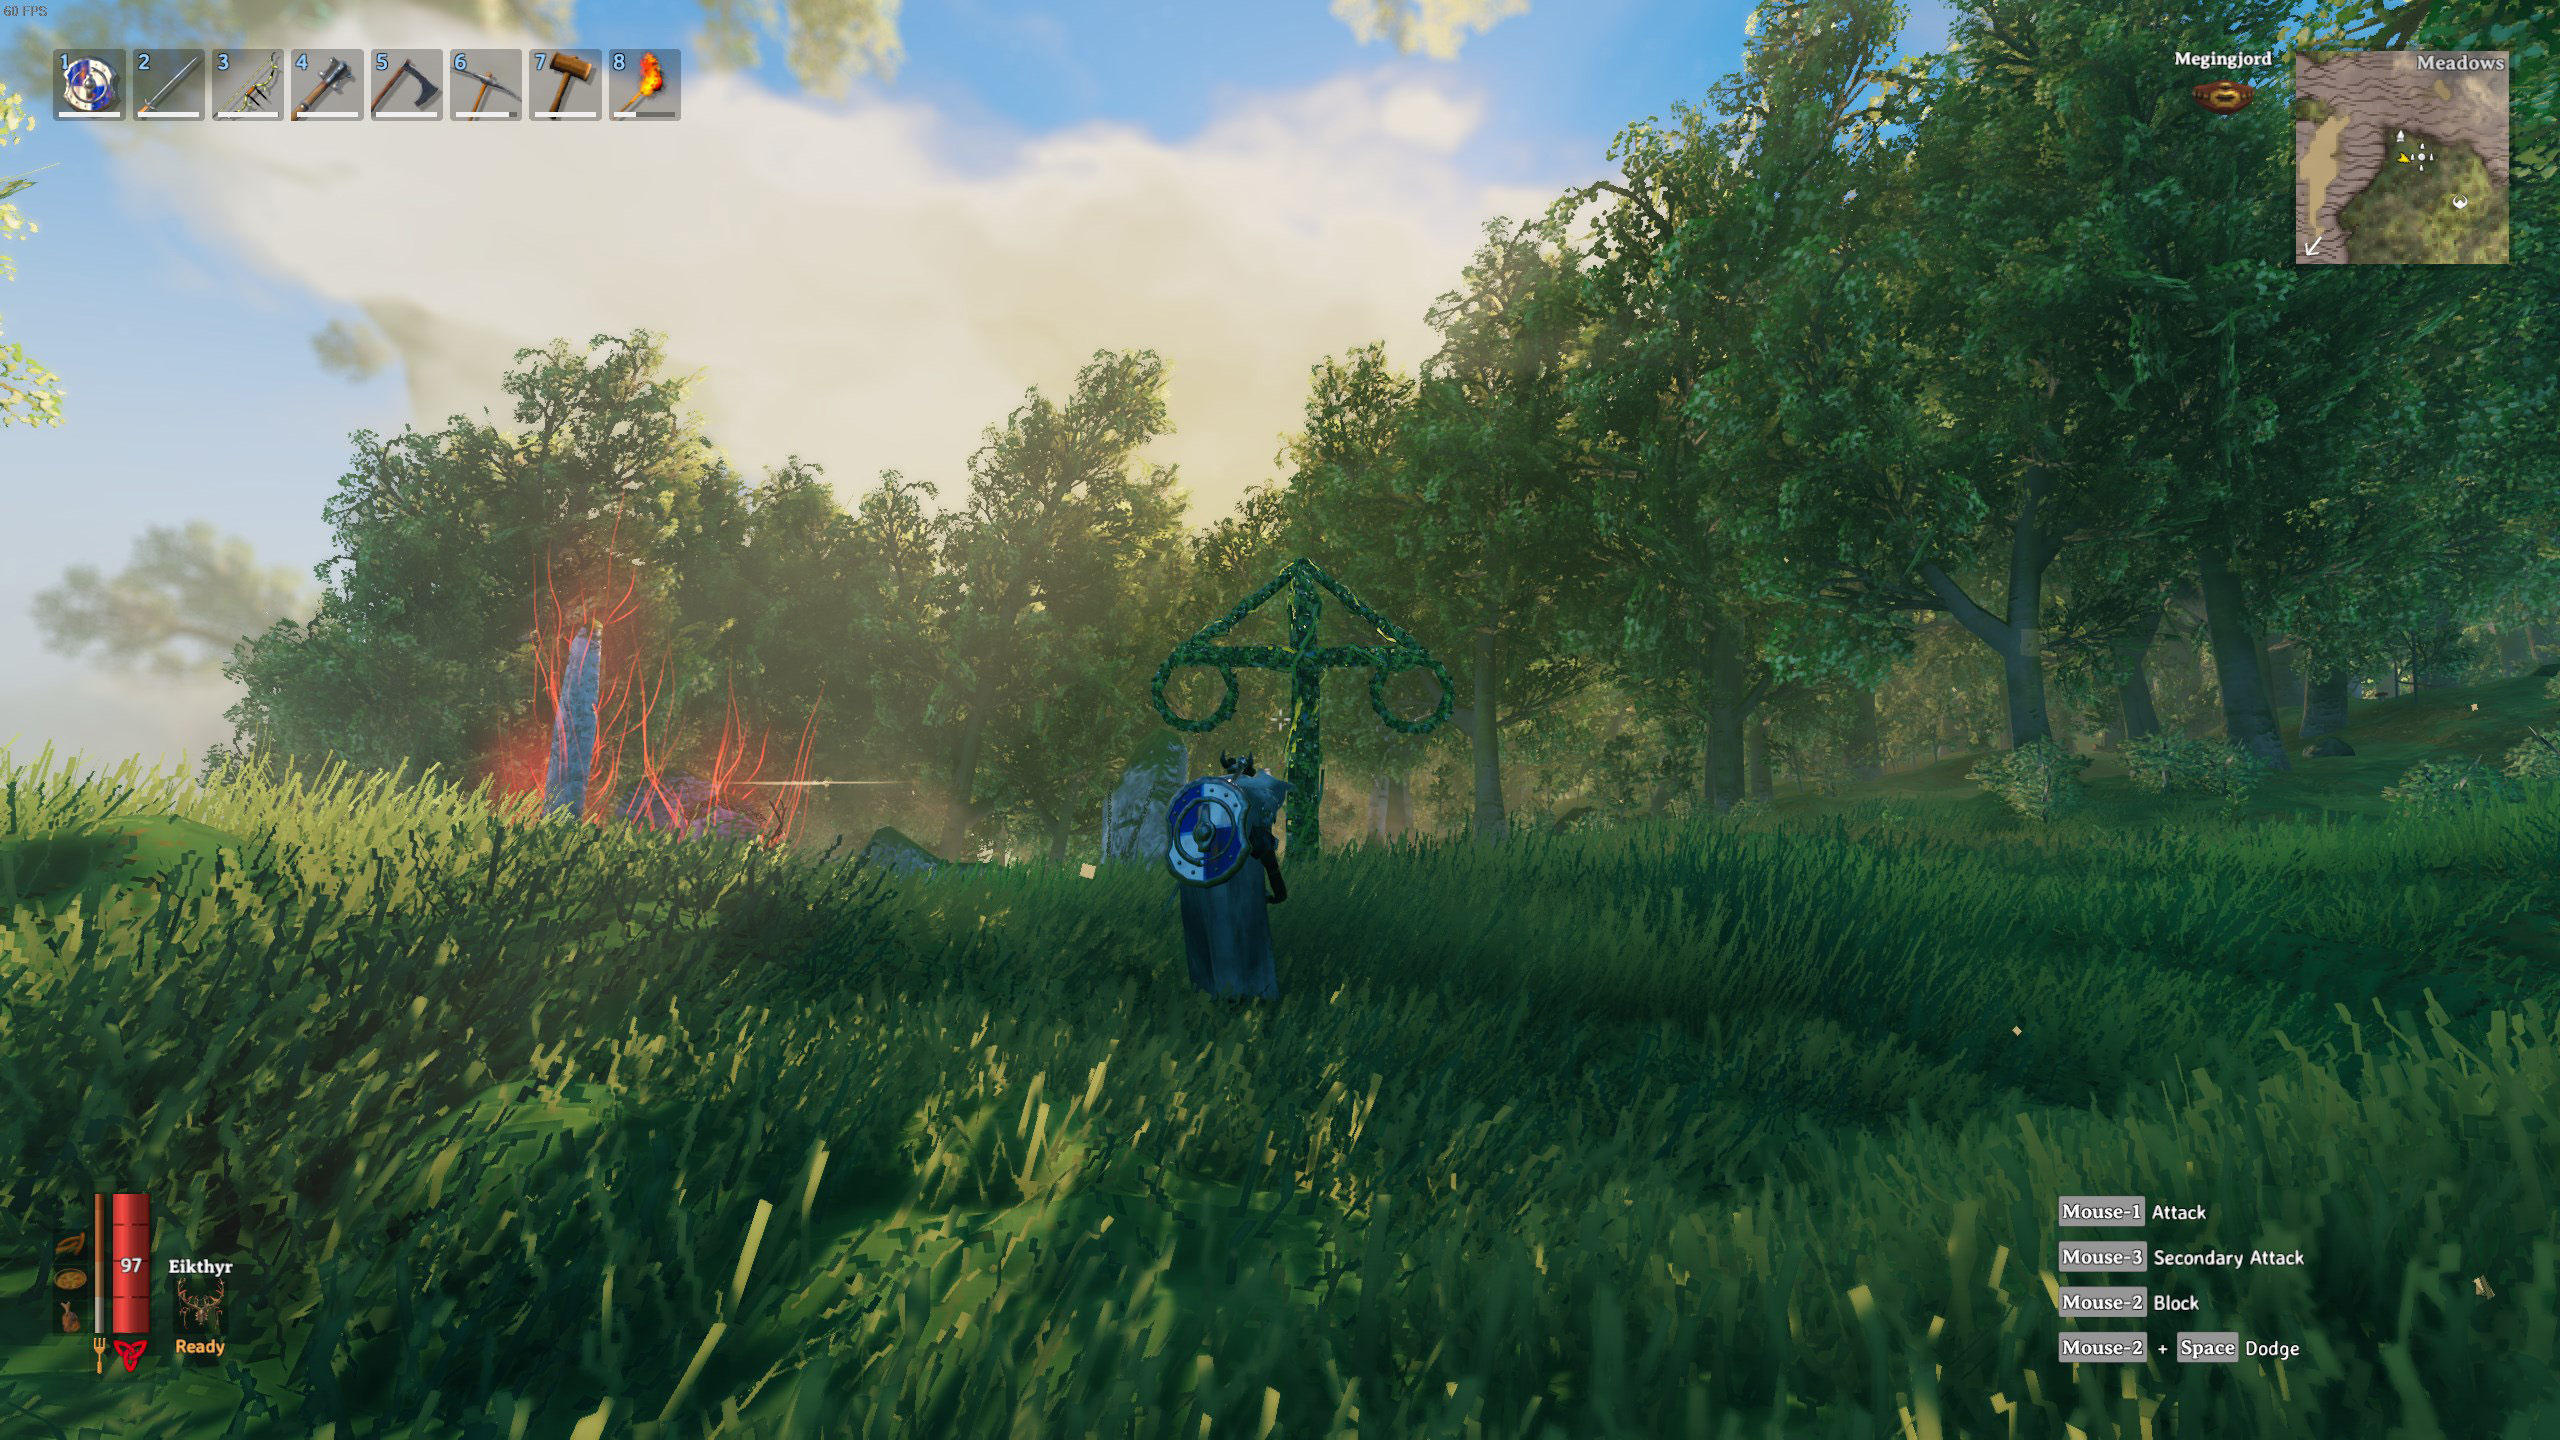 Maypoles in Valheim - Everything you need to know